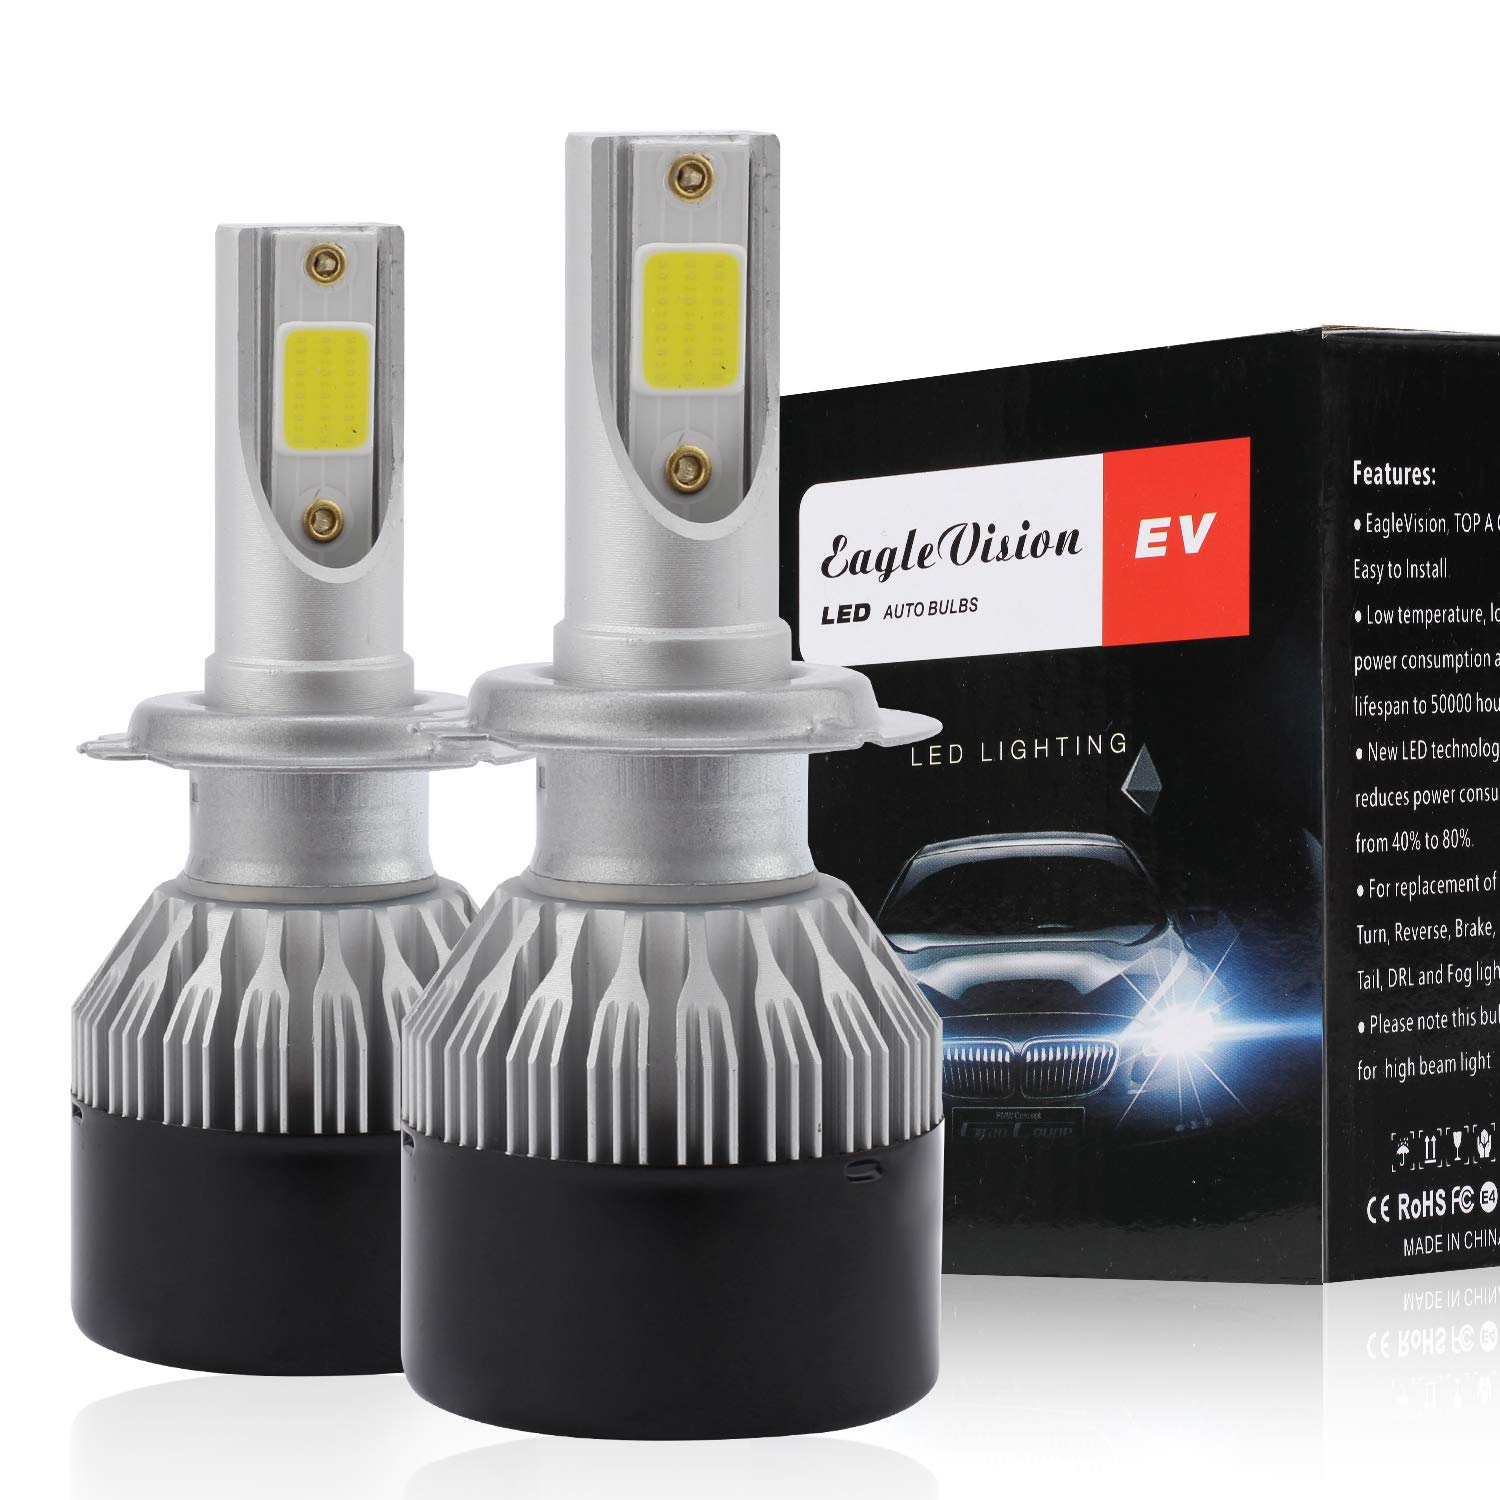 H7 LED Headlight Bulbs High Beam Conversion Kit,Non-Polarity,Upgraded 60xDOB Chips Head light Halogen Replacement 6500K Xenon White Pack of 2